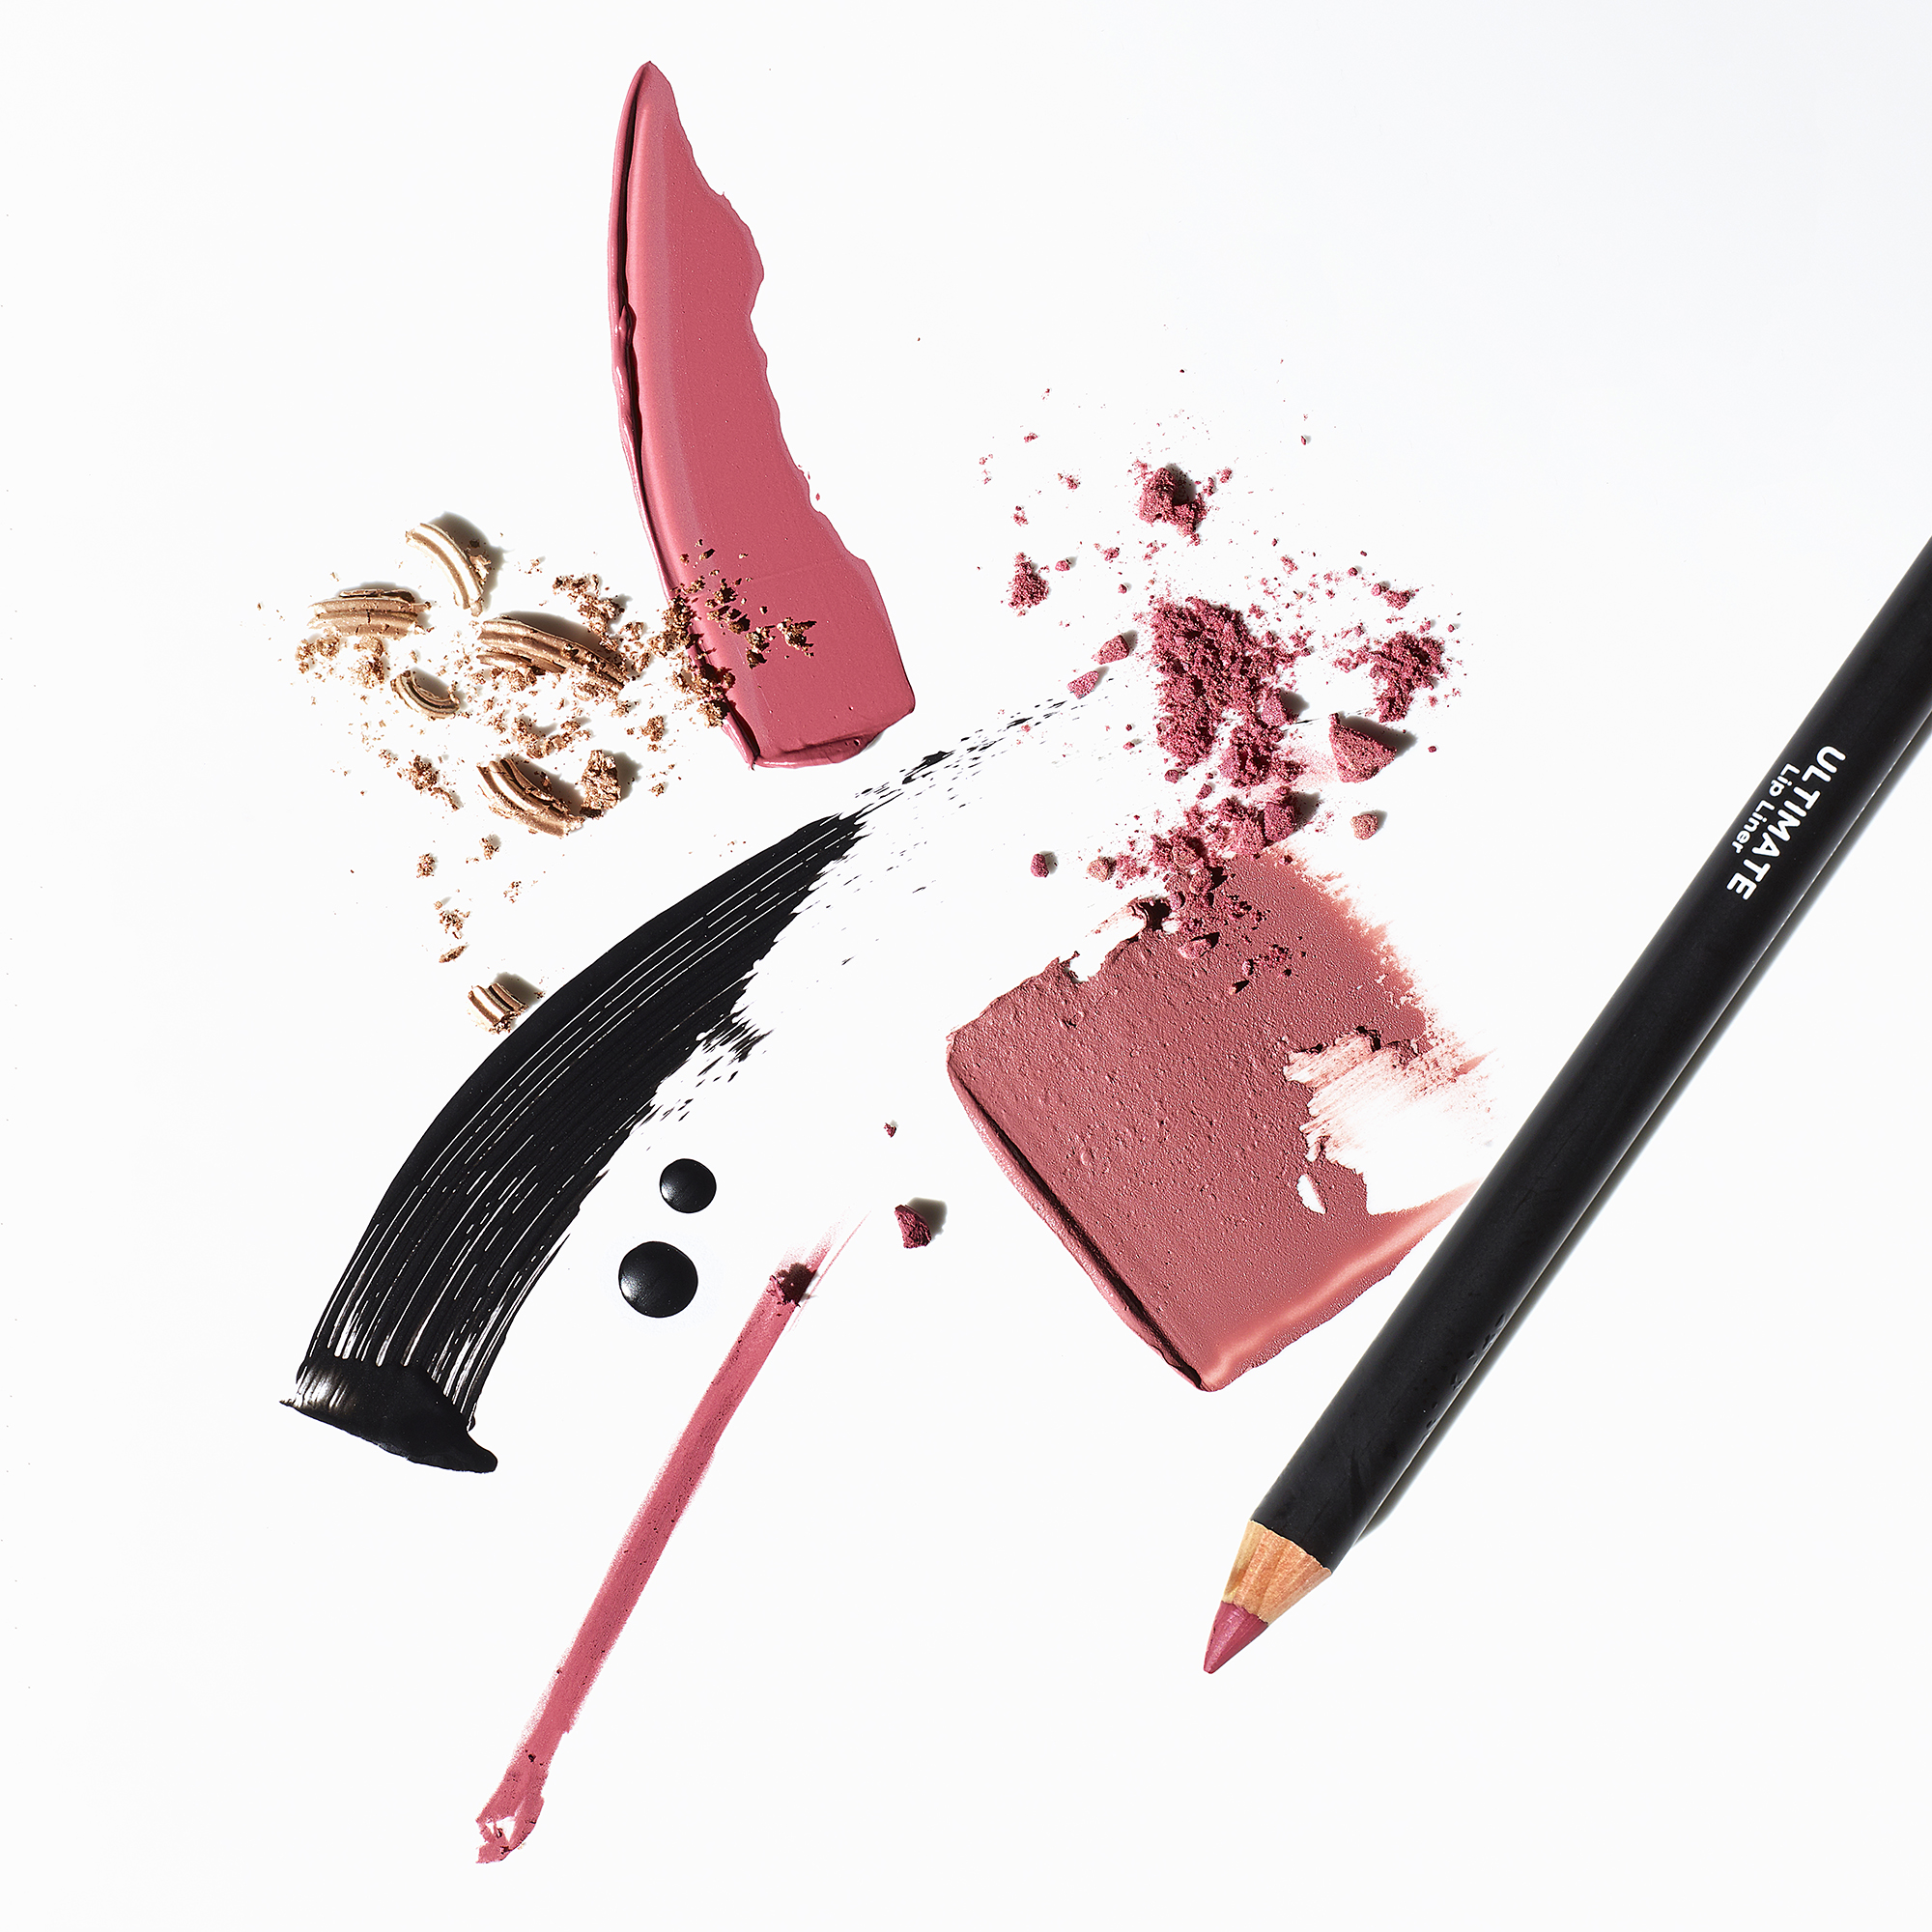 next_beauty_Make_Up_Swatch_still_life.jpg